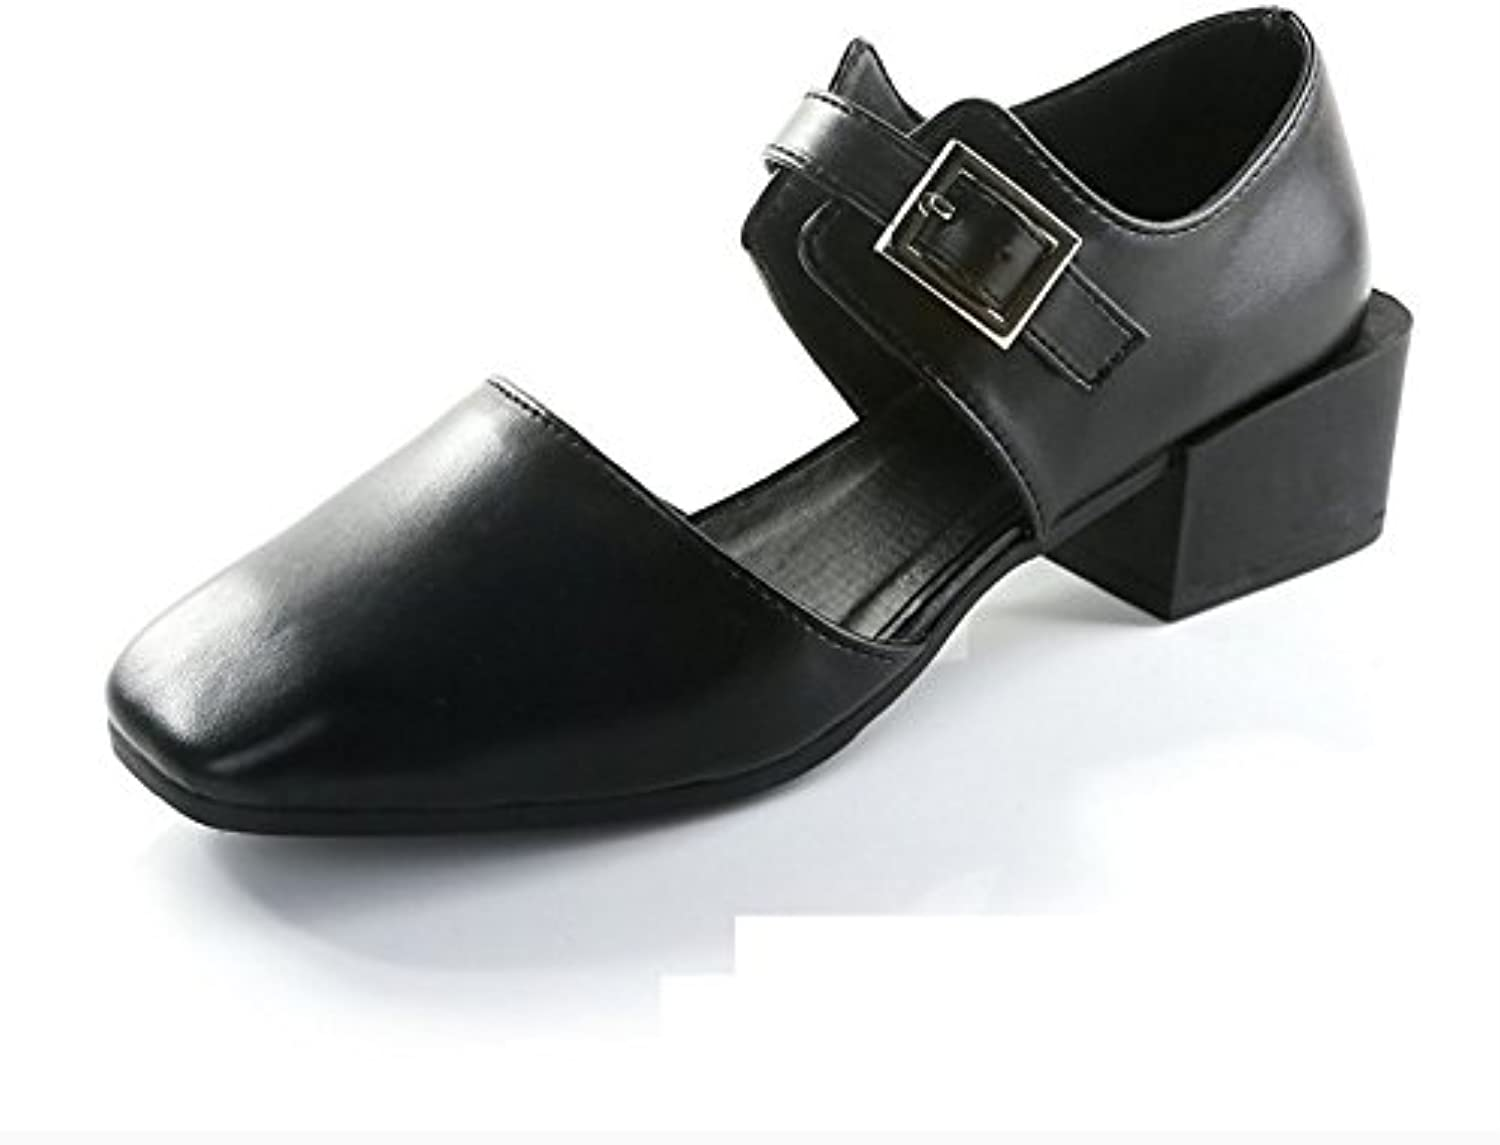 WYMBS Autumn and Winter GiftsFemale Square Head shoes Buckle